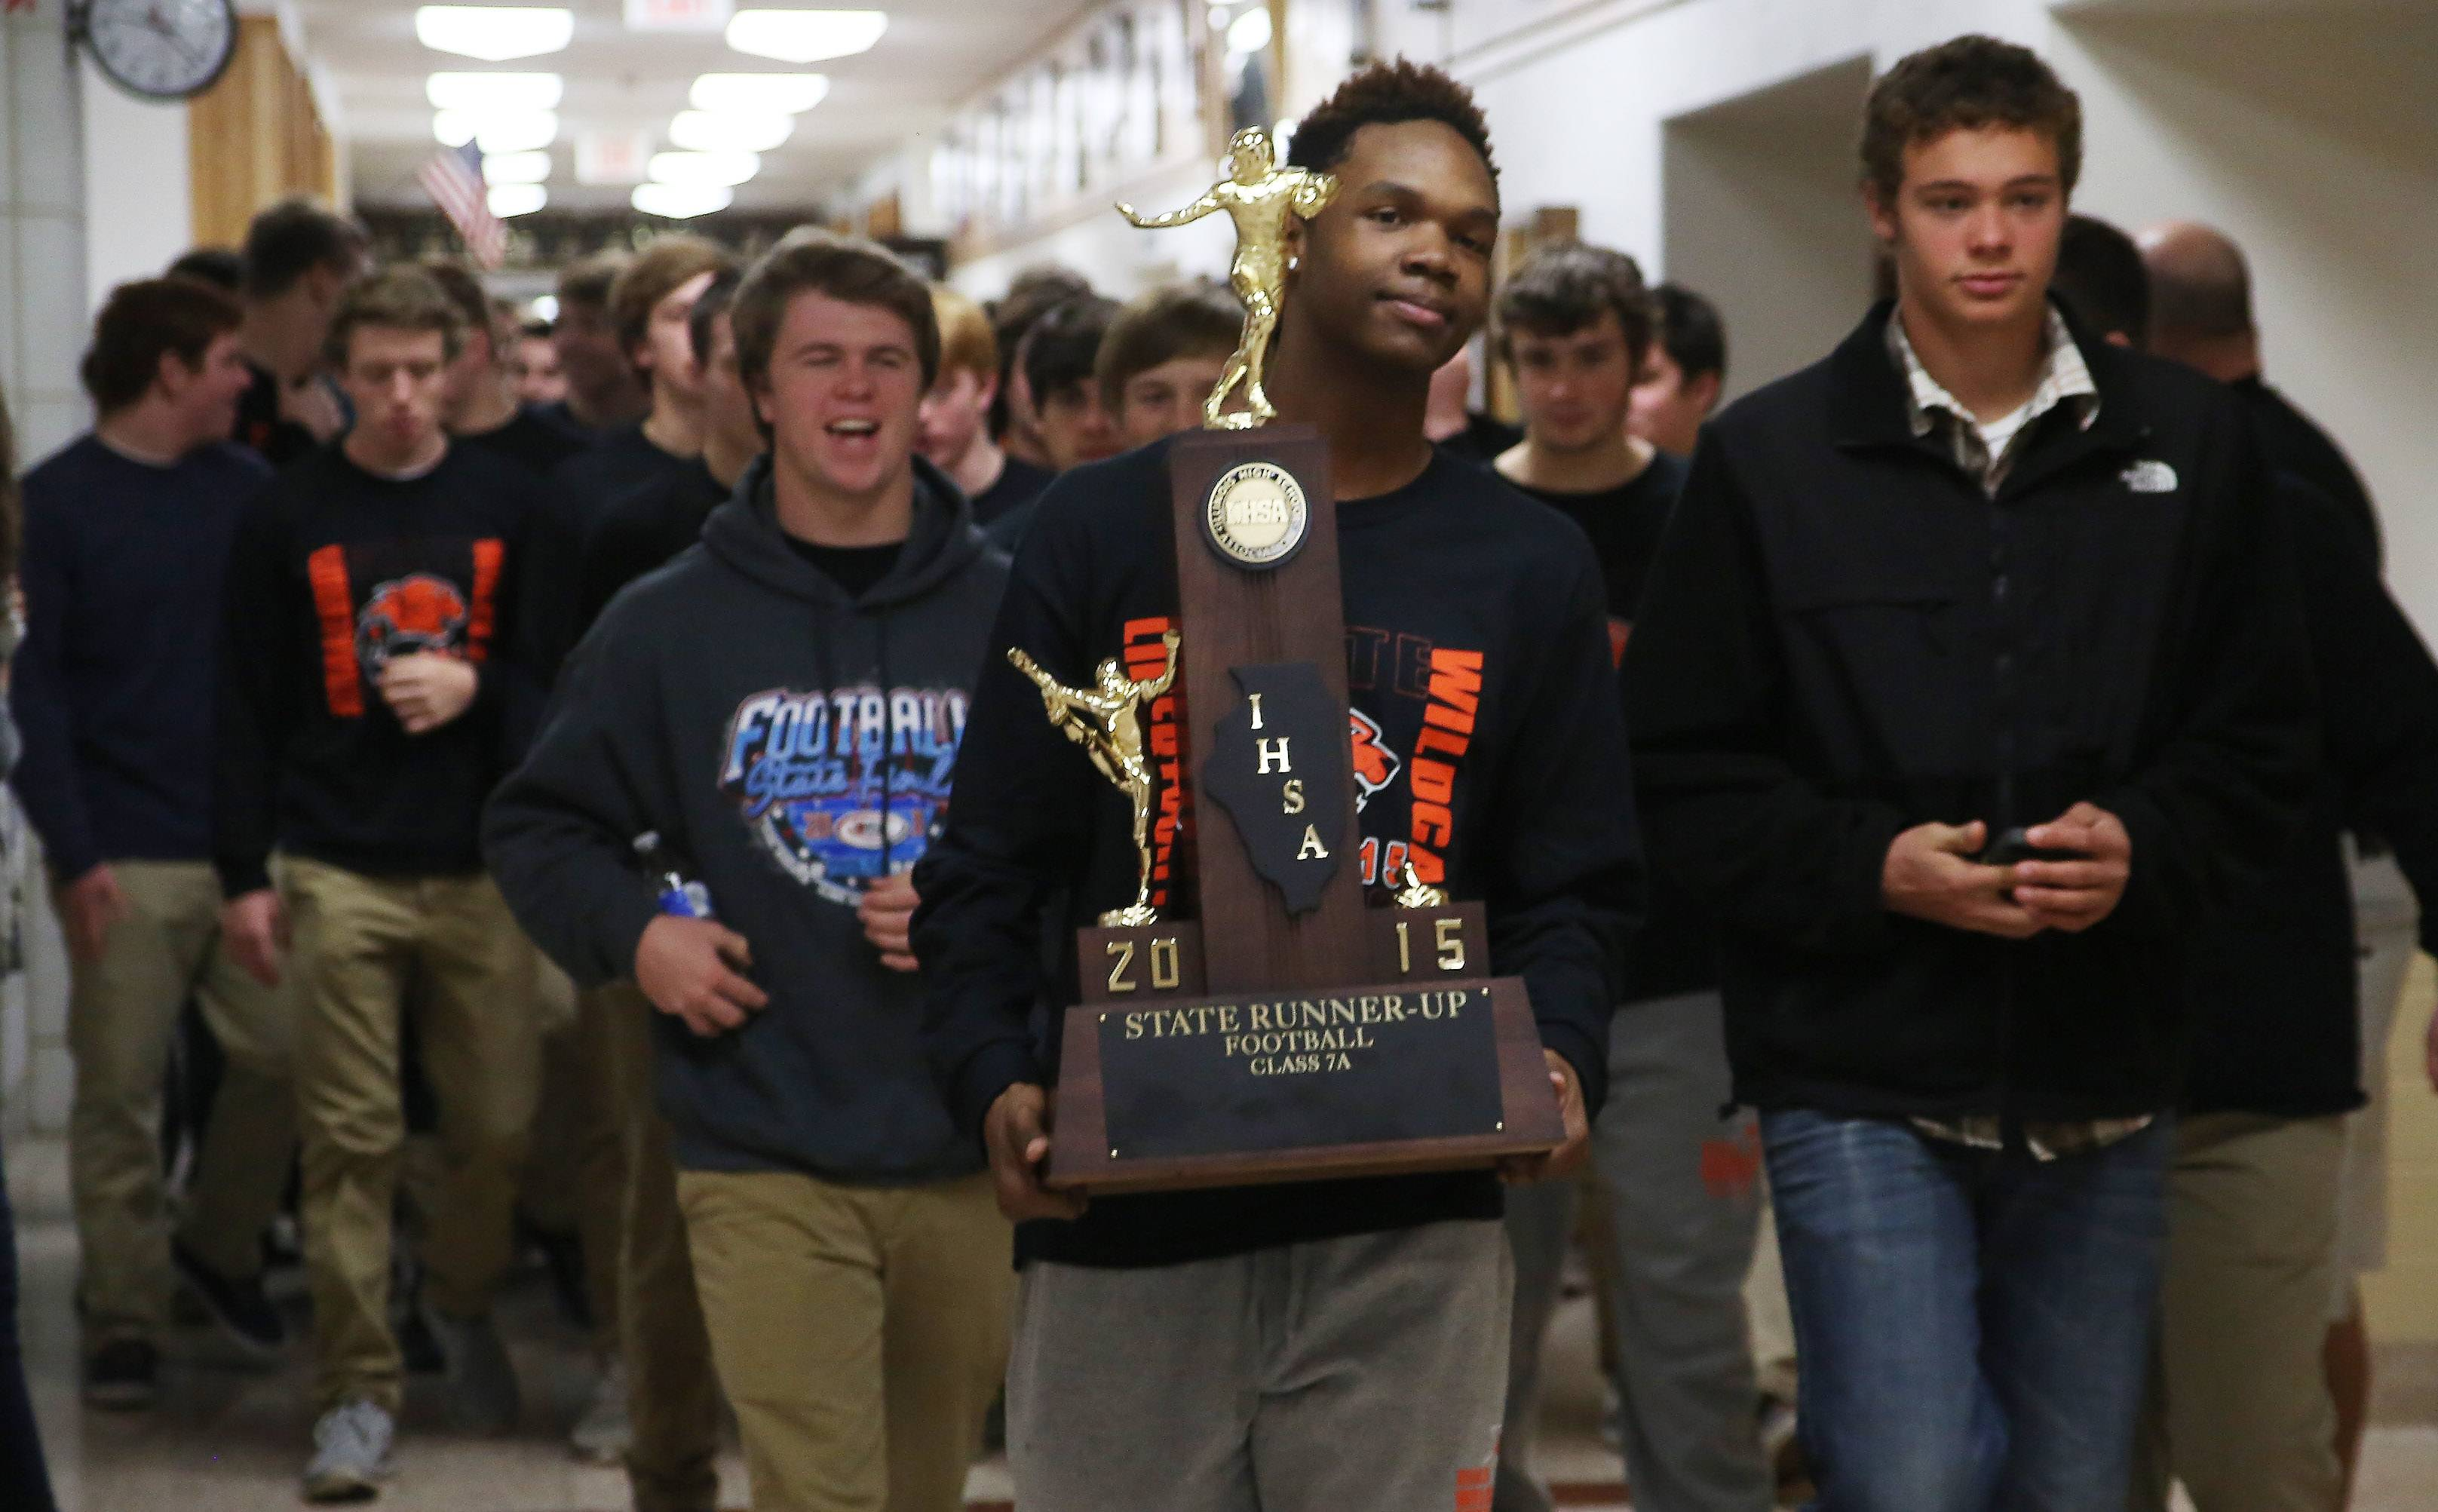 Libertyville High honors football team after title loss